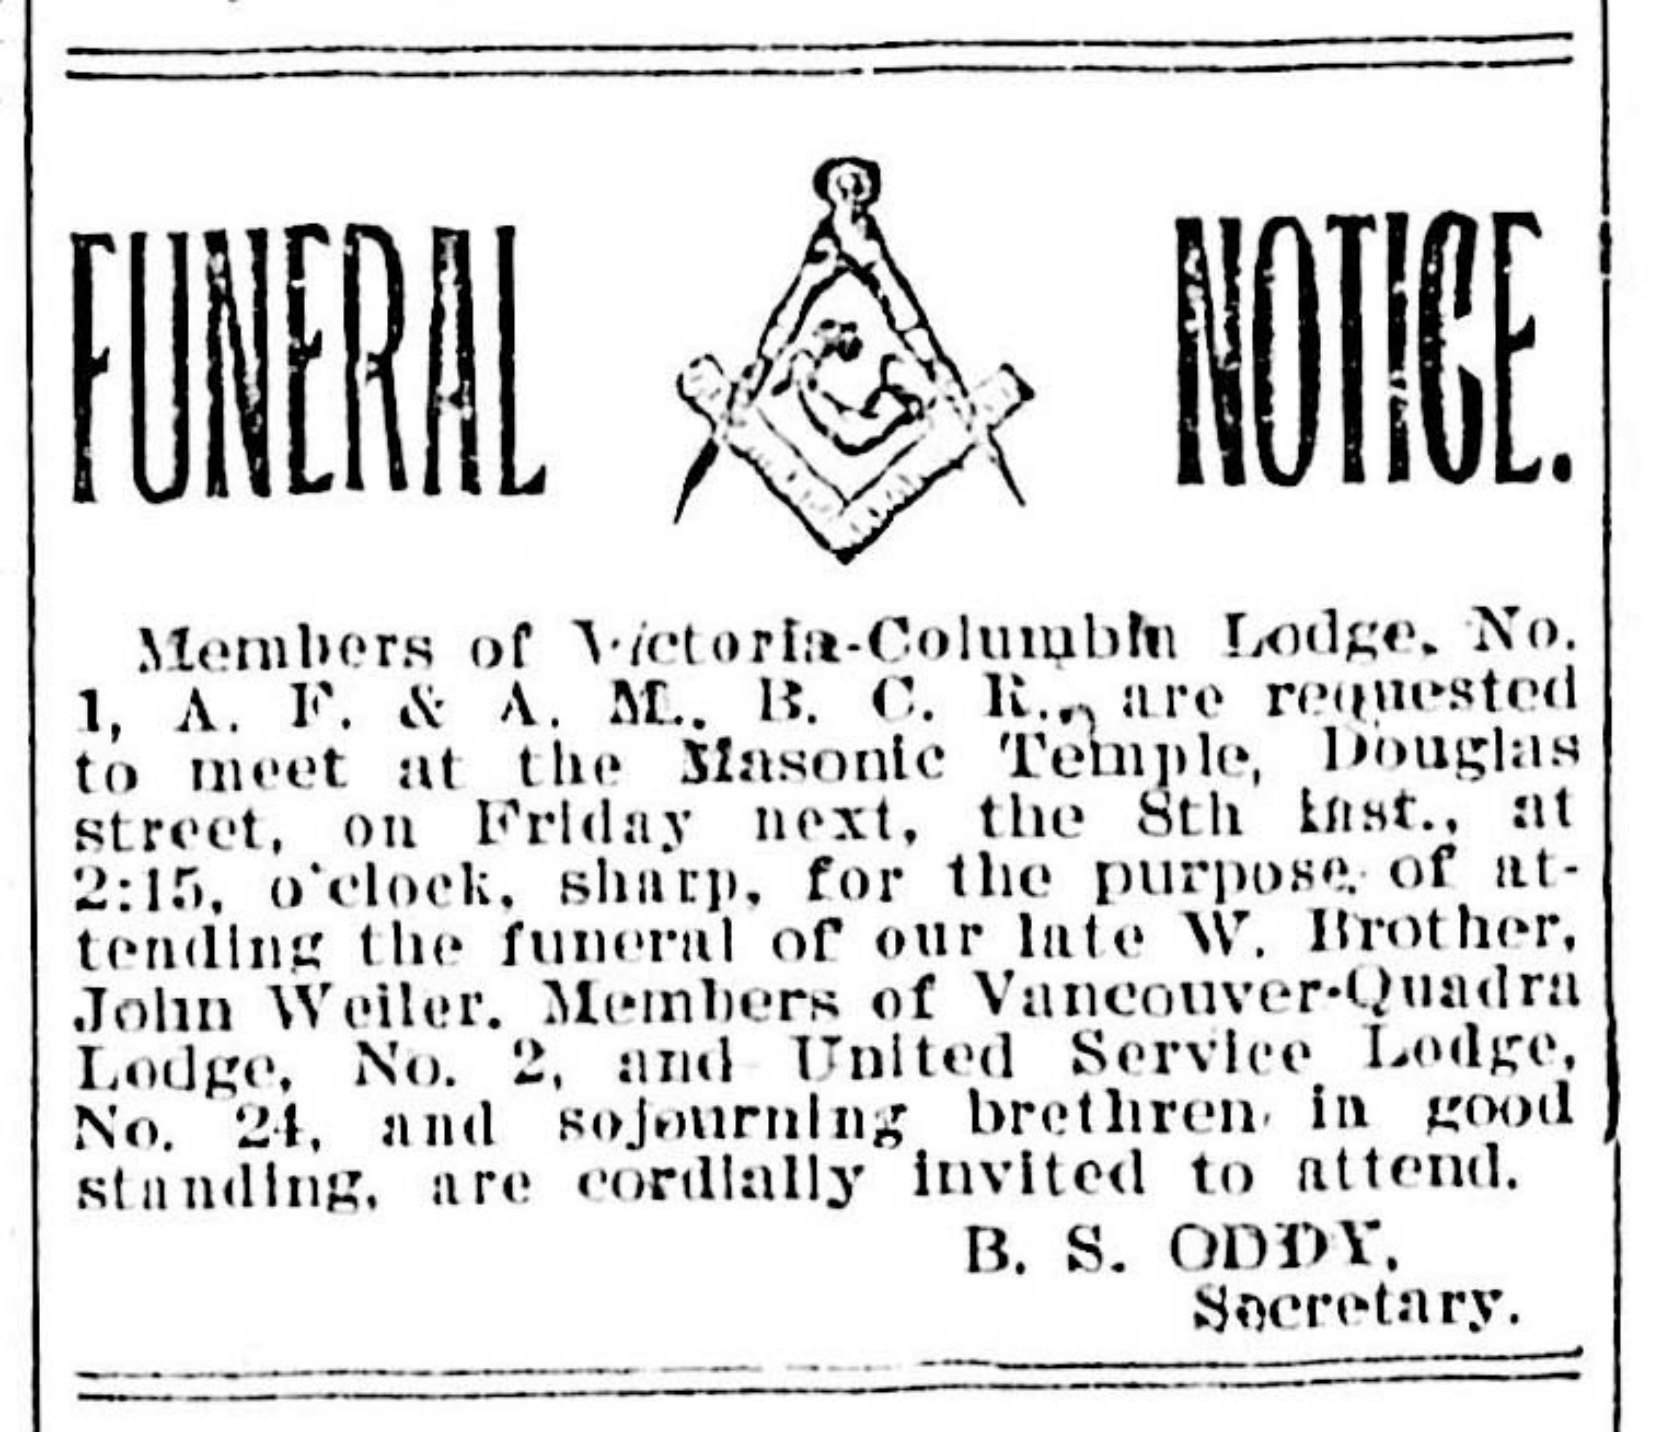 Funeral Notice for John Weiler in Victoria newspapers, September 1899